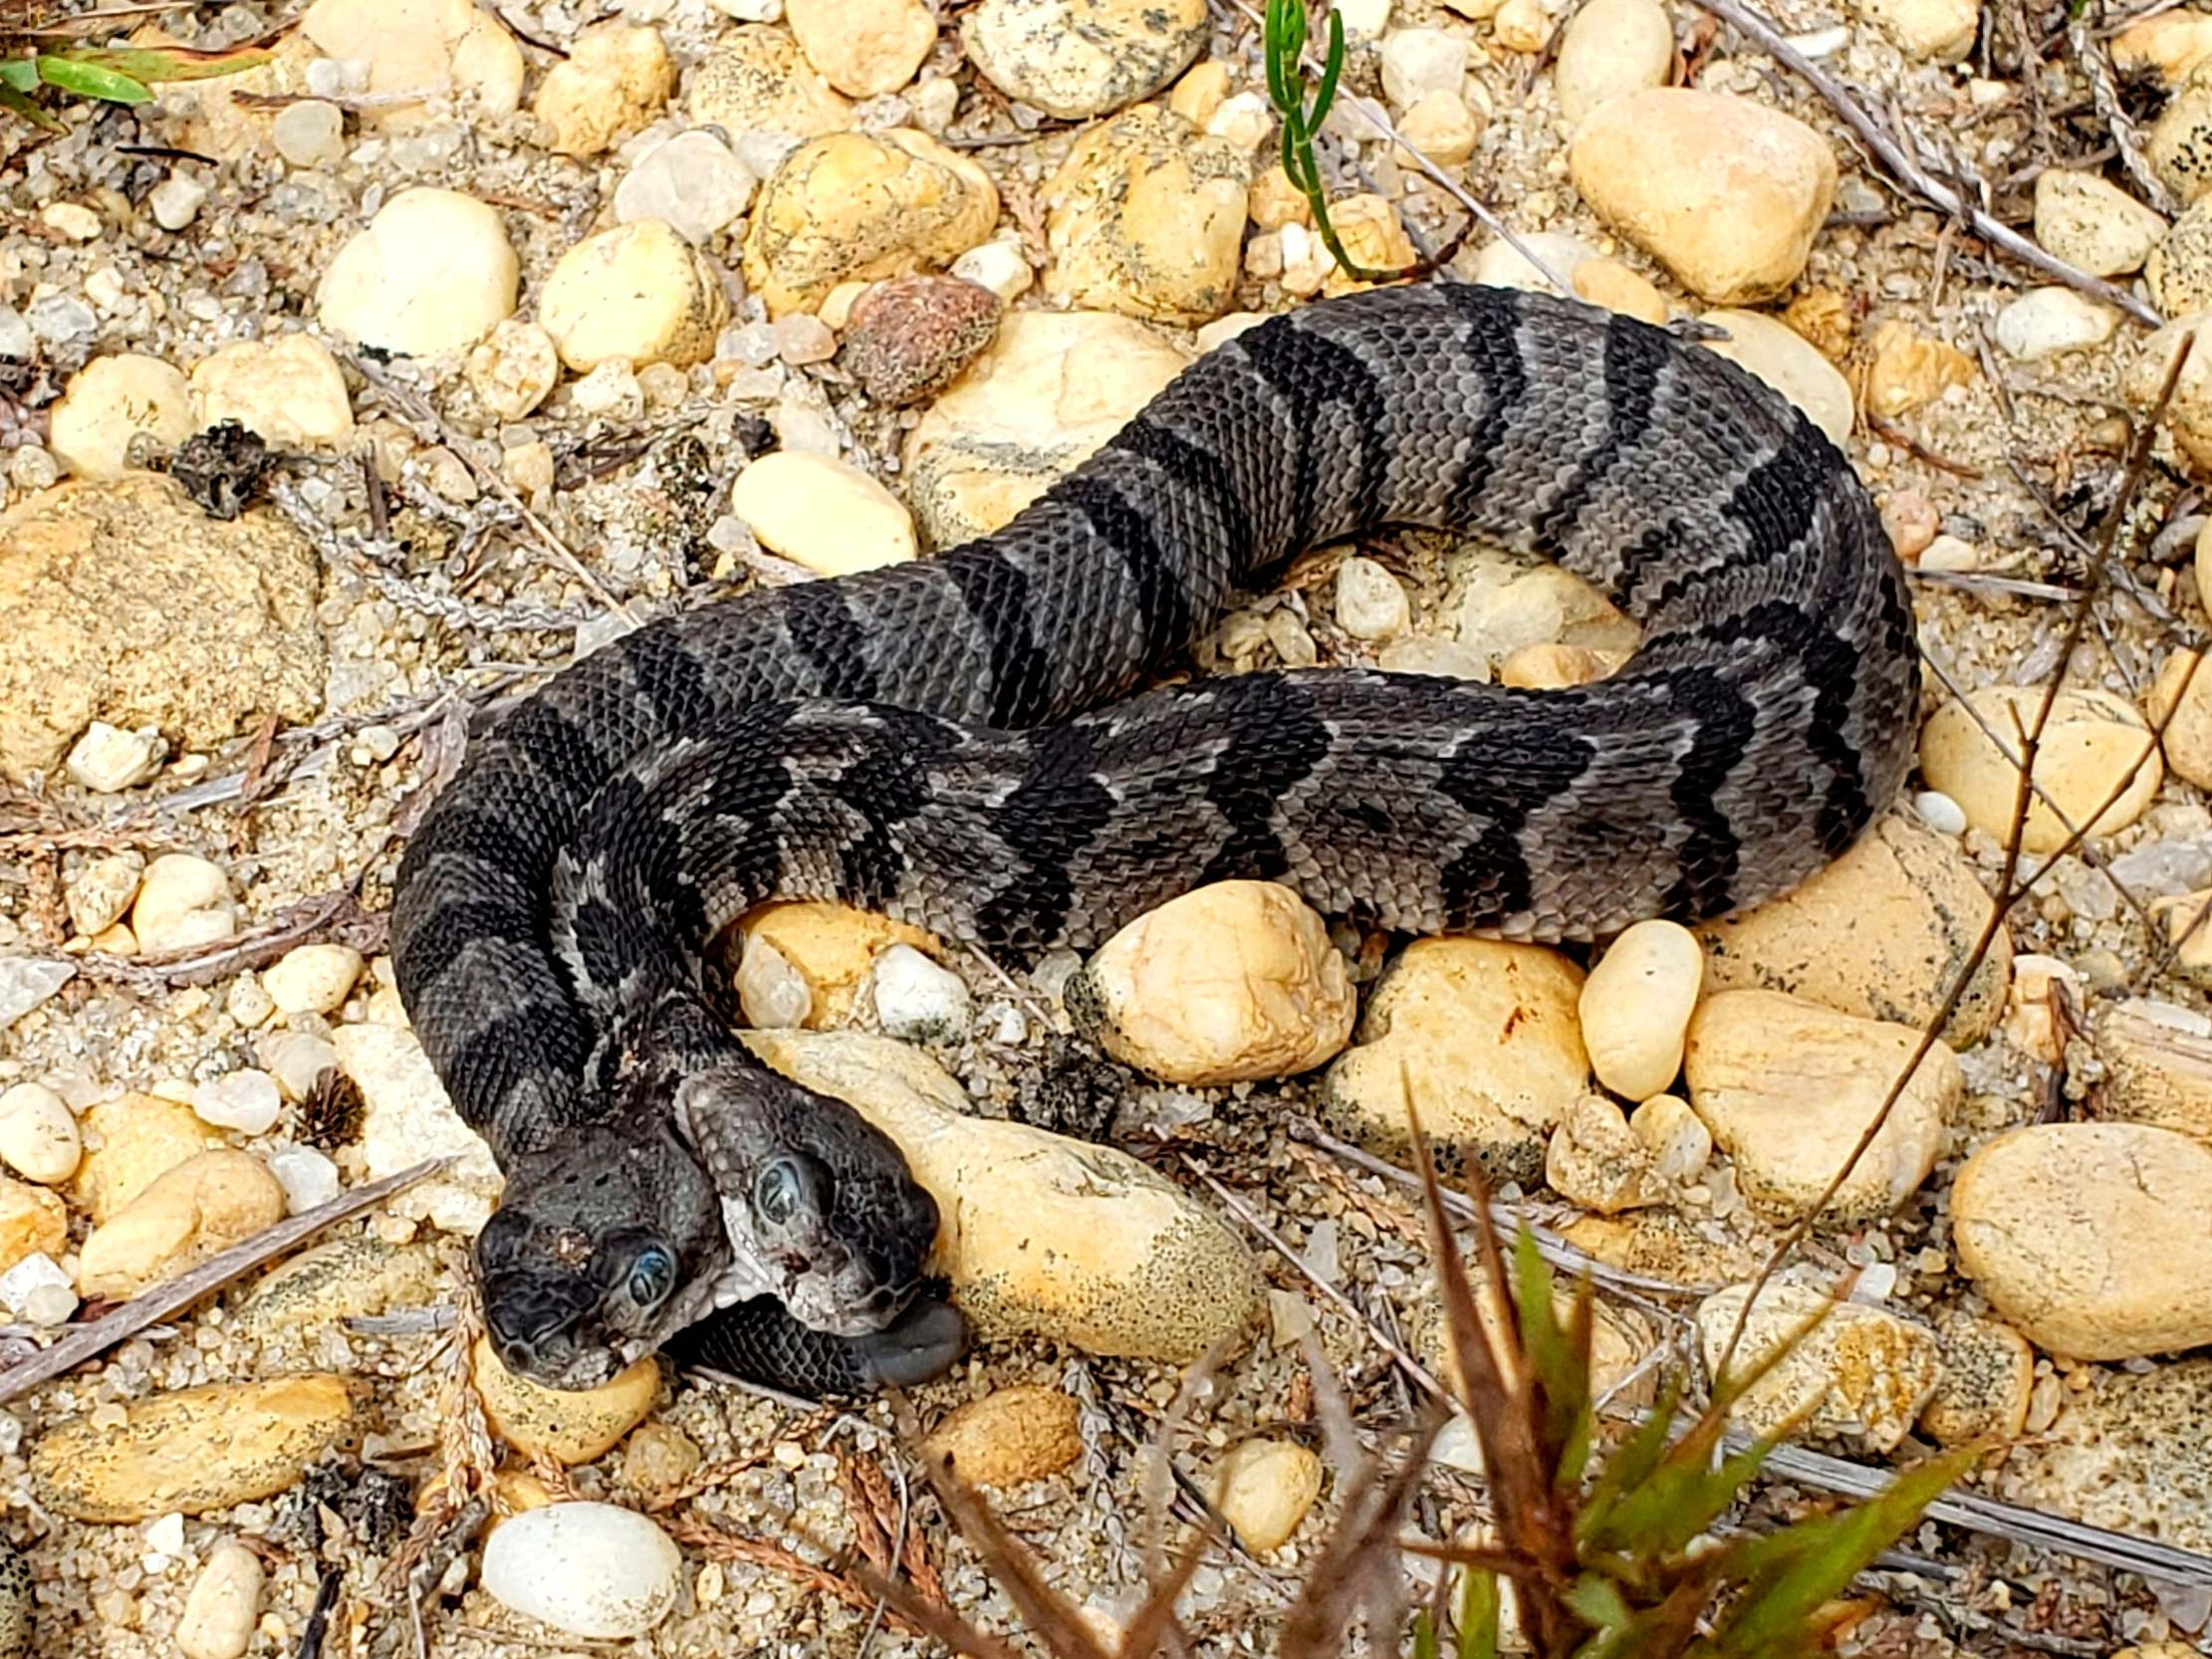 Rare two-headed rattlesnake found in US